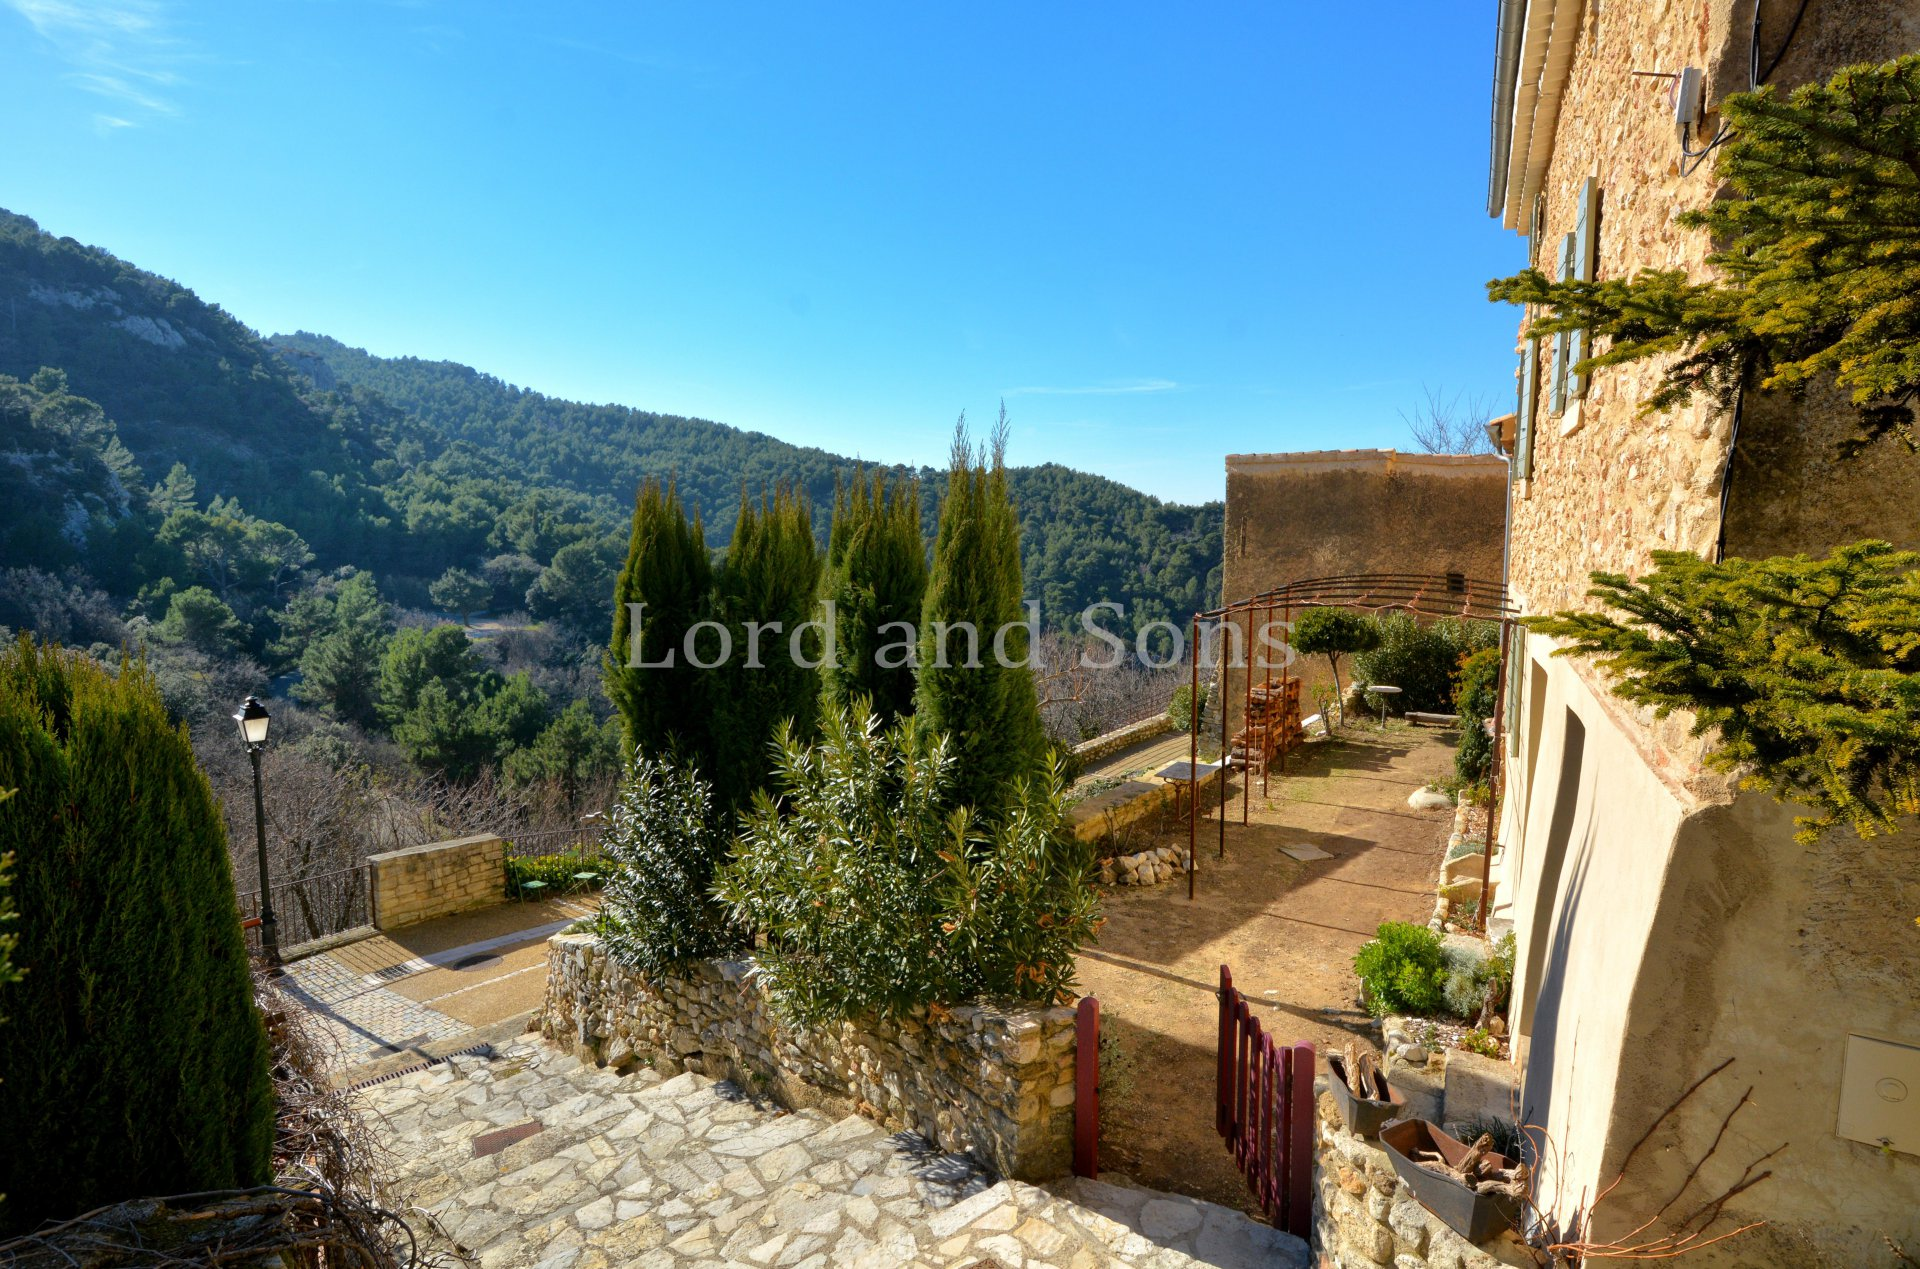 agence immobiliere La Roque-Alric